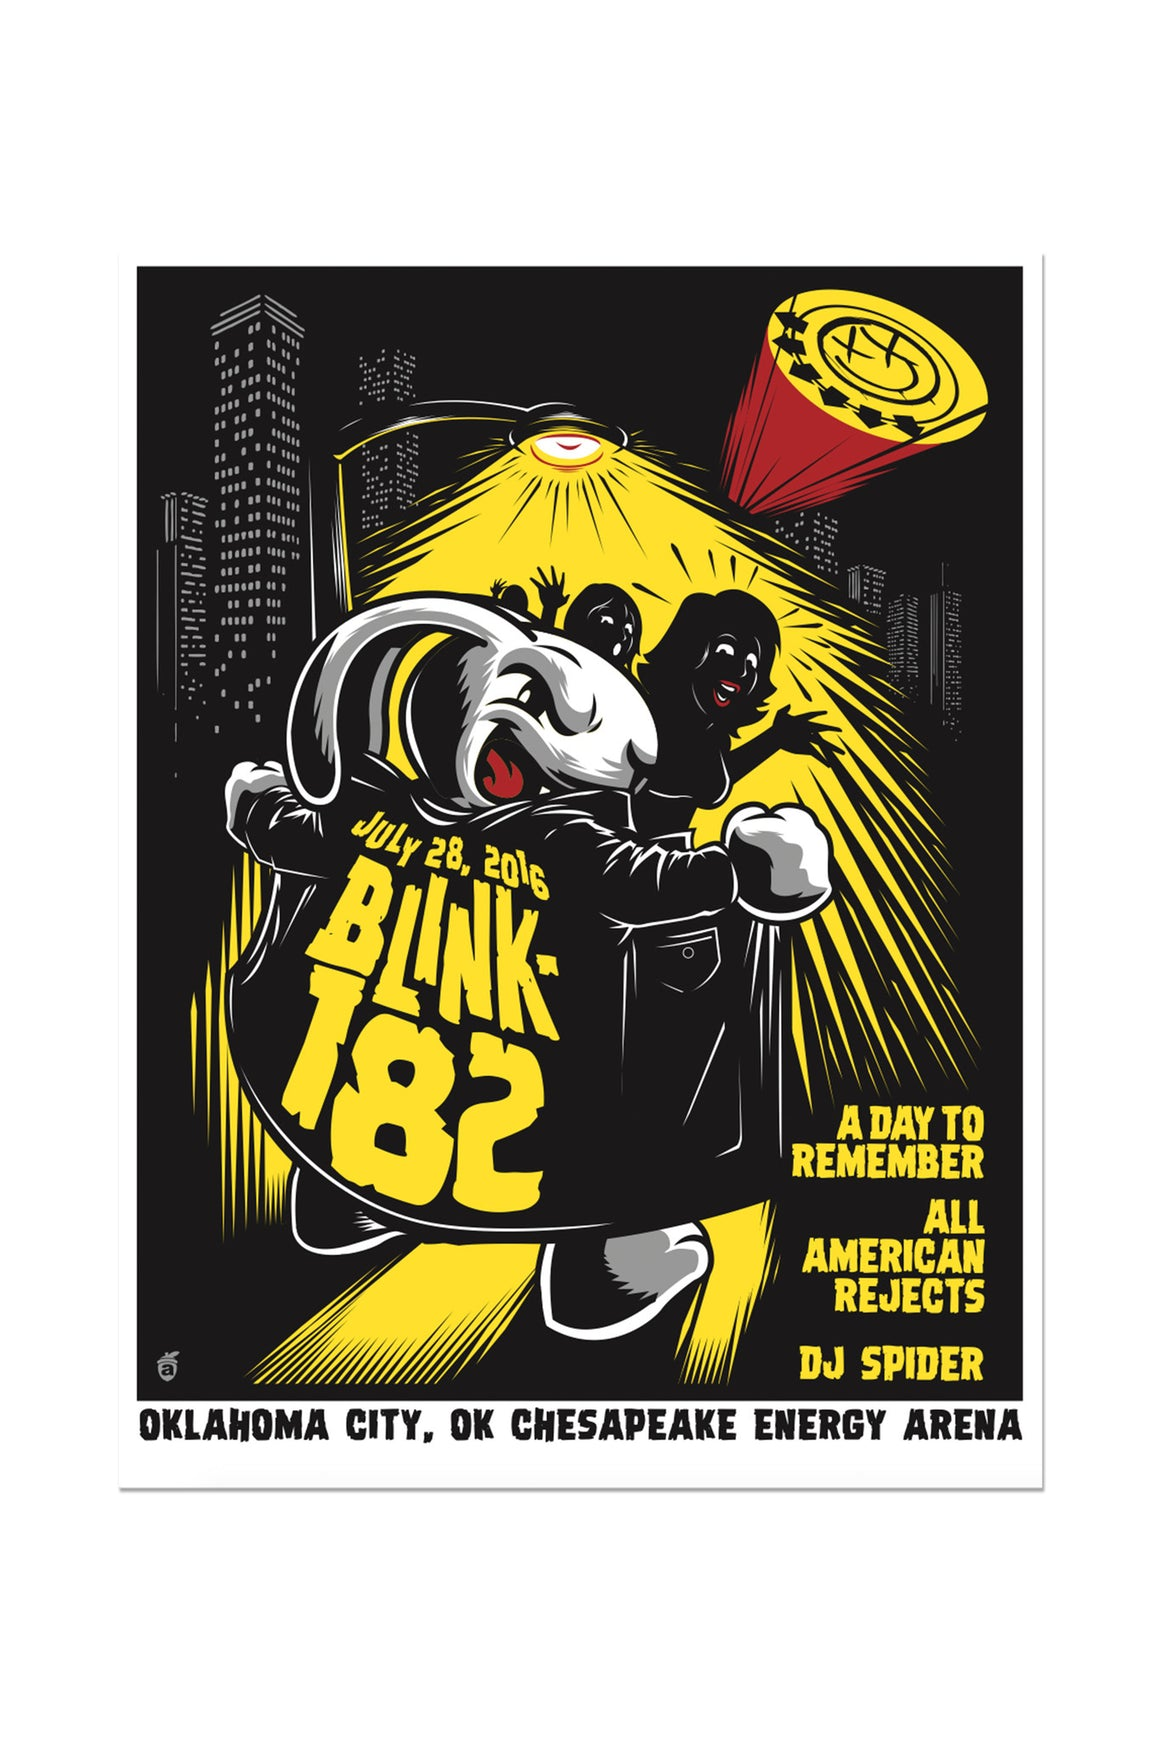 blink-182 7/28/2016 Oklahoma City, OK Event Poster